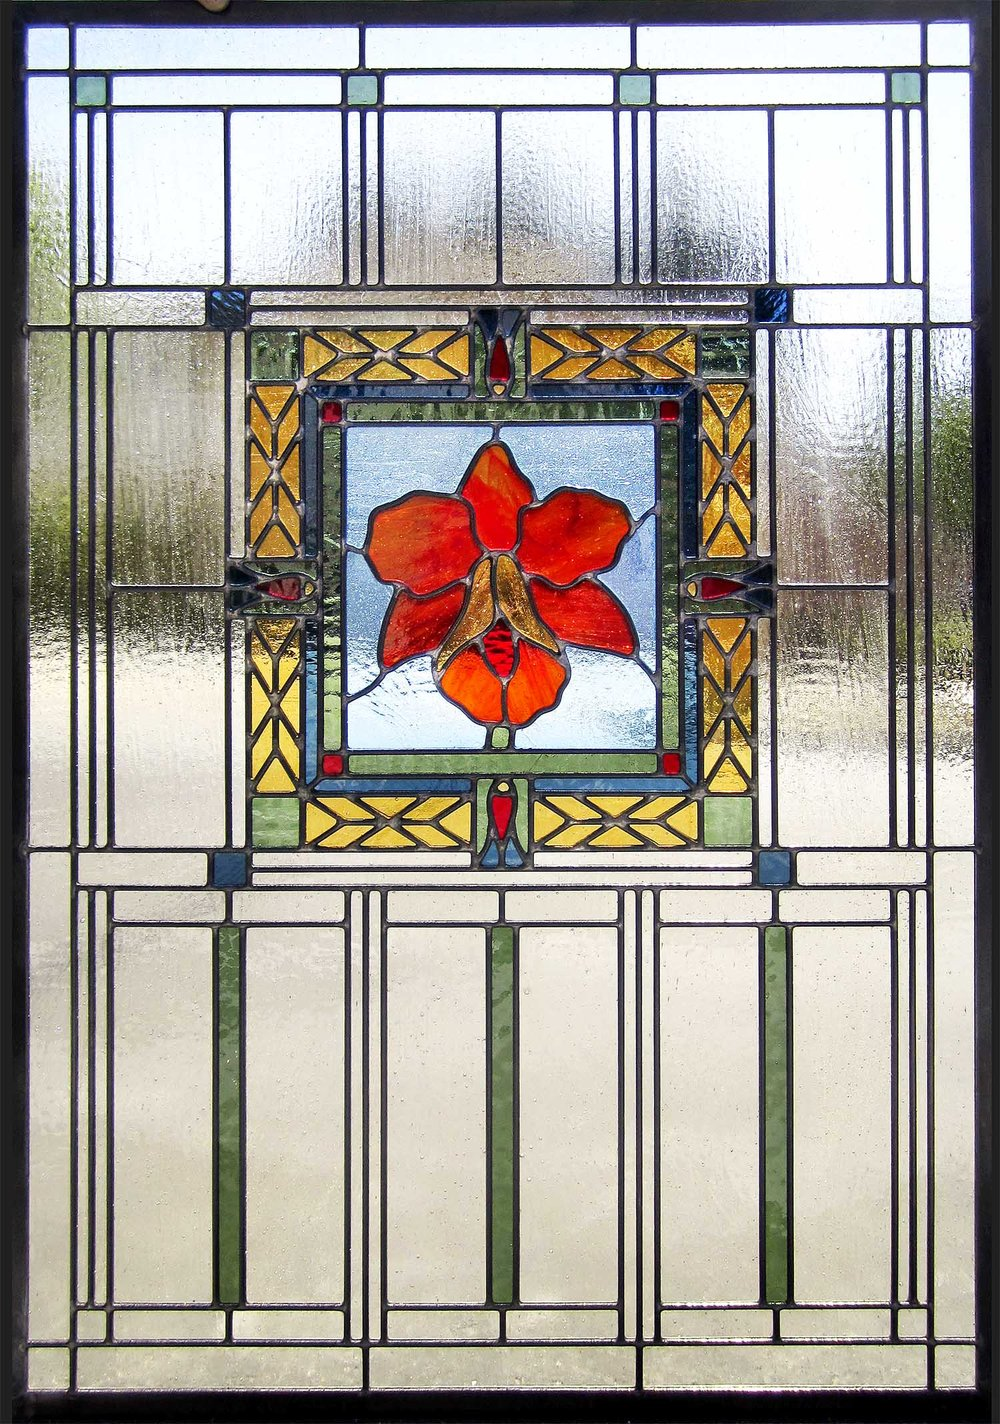 floral craftsman leaded glass stained glass studio palo alto atherton california san francisco san jose legacy glass.jpg